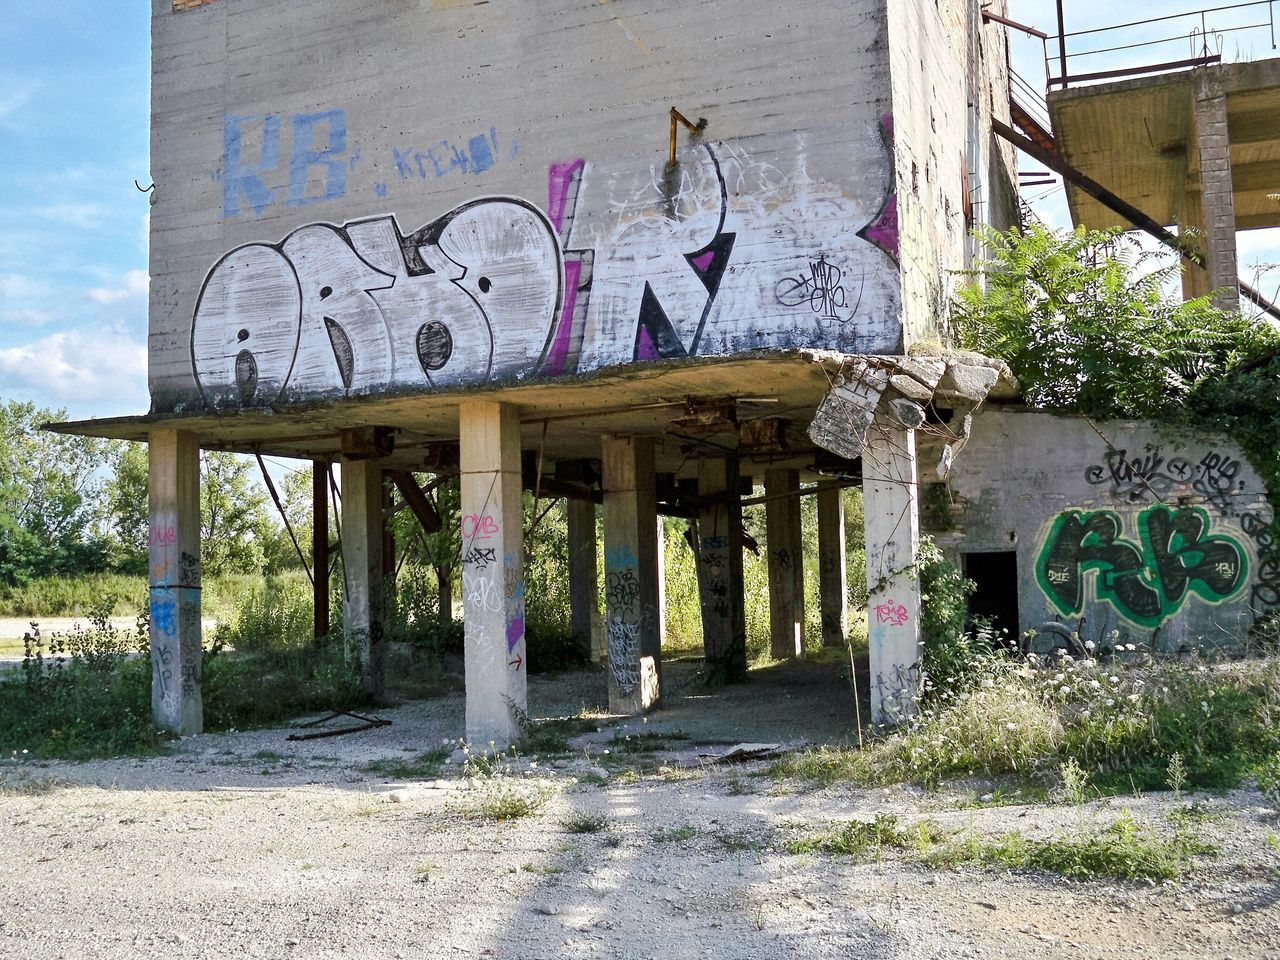 graffiti, architecture, day, communication, built structure, text, abandoned, building exterior, no people, outdoors